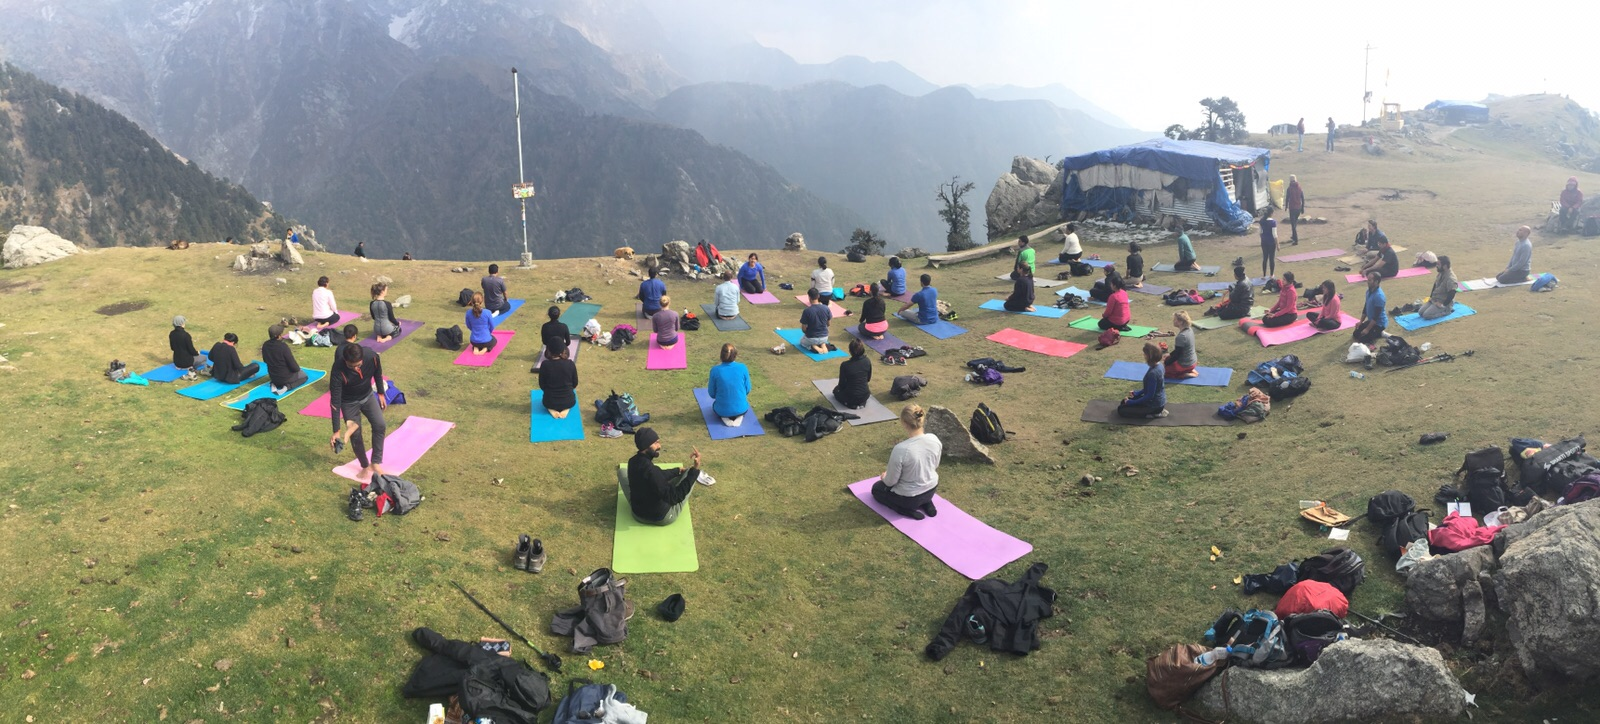 yoga, total yoga. yoga himalayas, yoga retreat, yoga retreat india